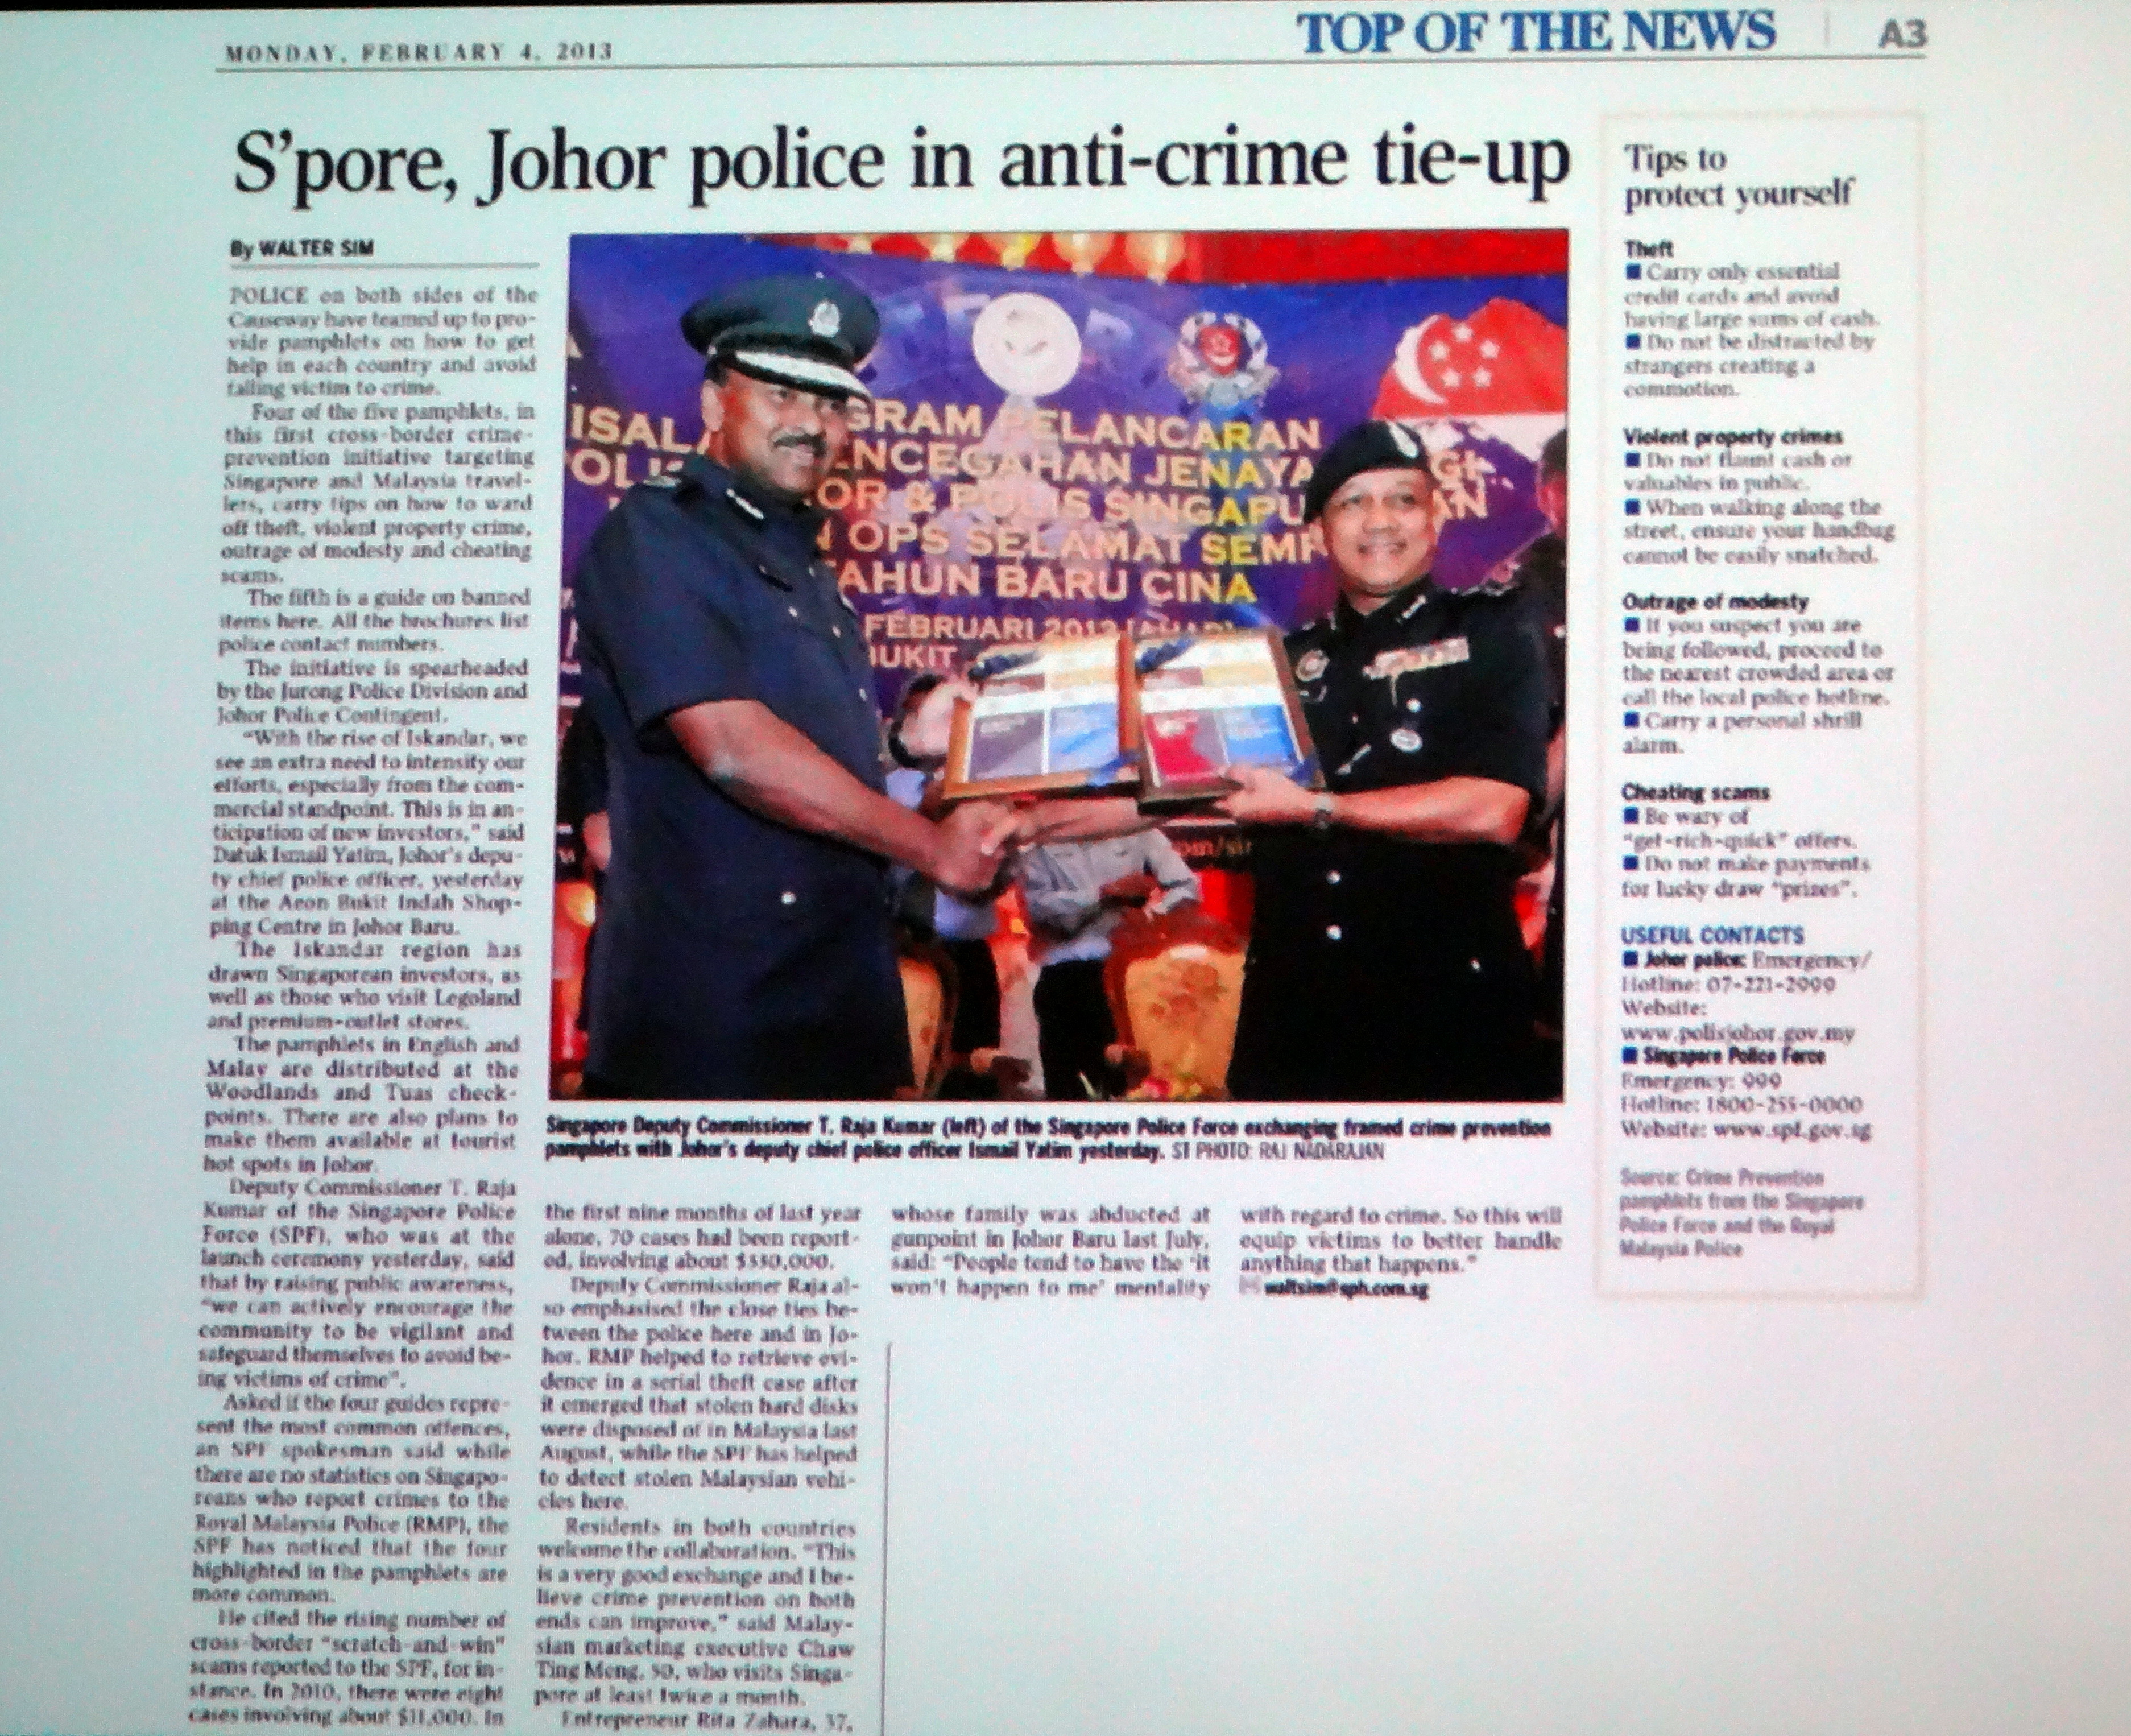 Spore Johor police in anti – crime tie- up